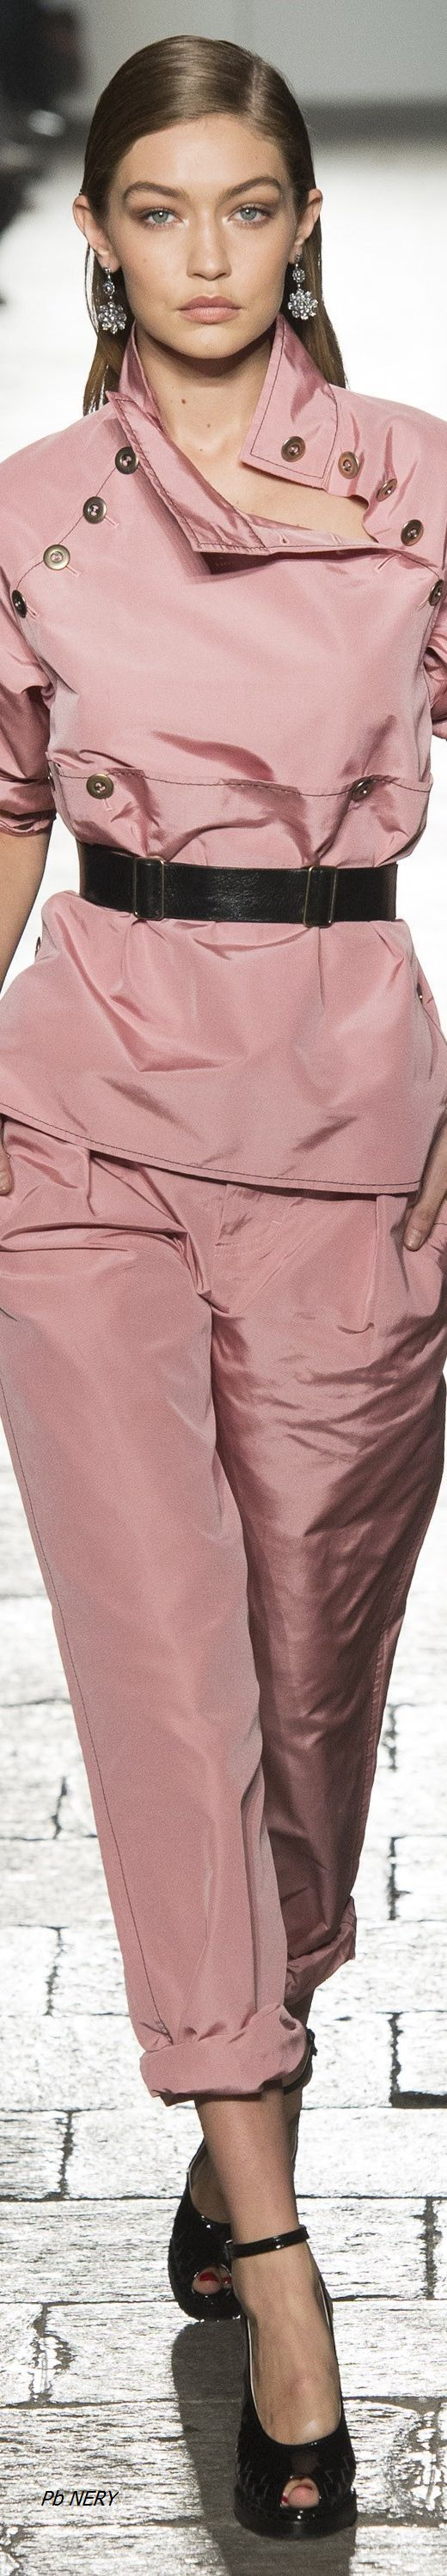 ~OH SO PRETTY IN HOT PINK~ Bottega Veneta - Spring 2017 RTW